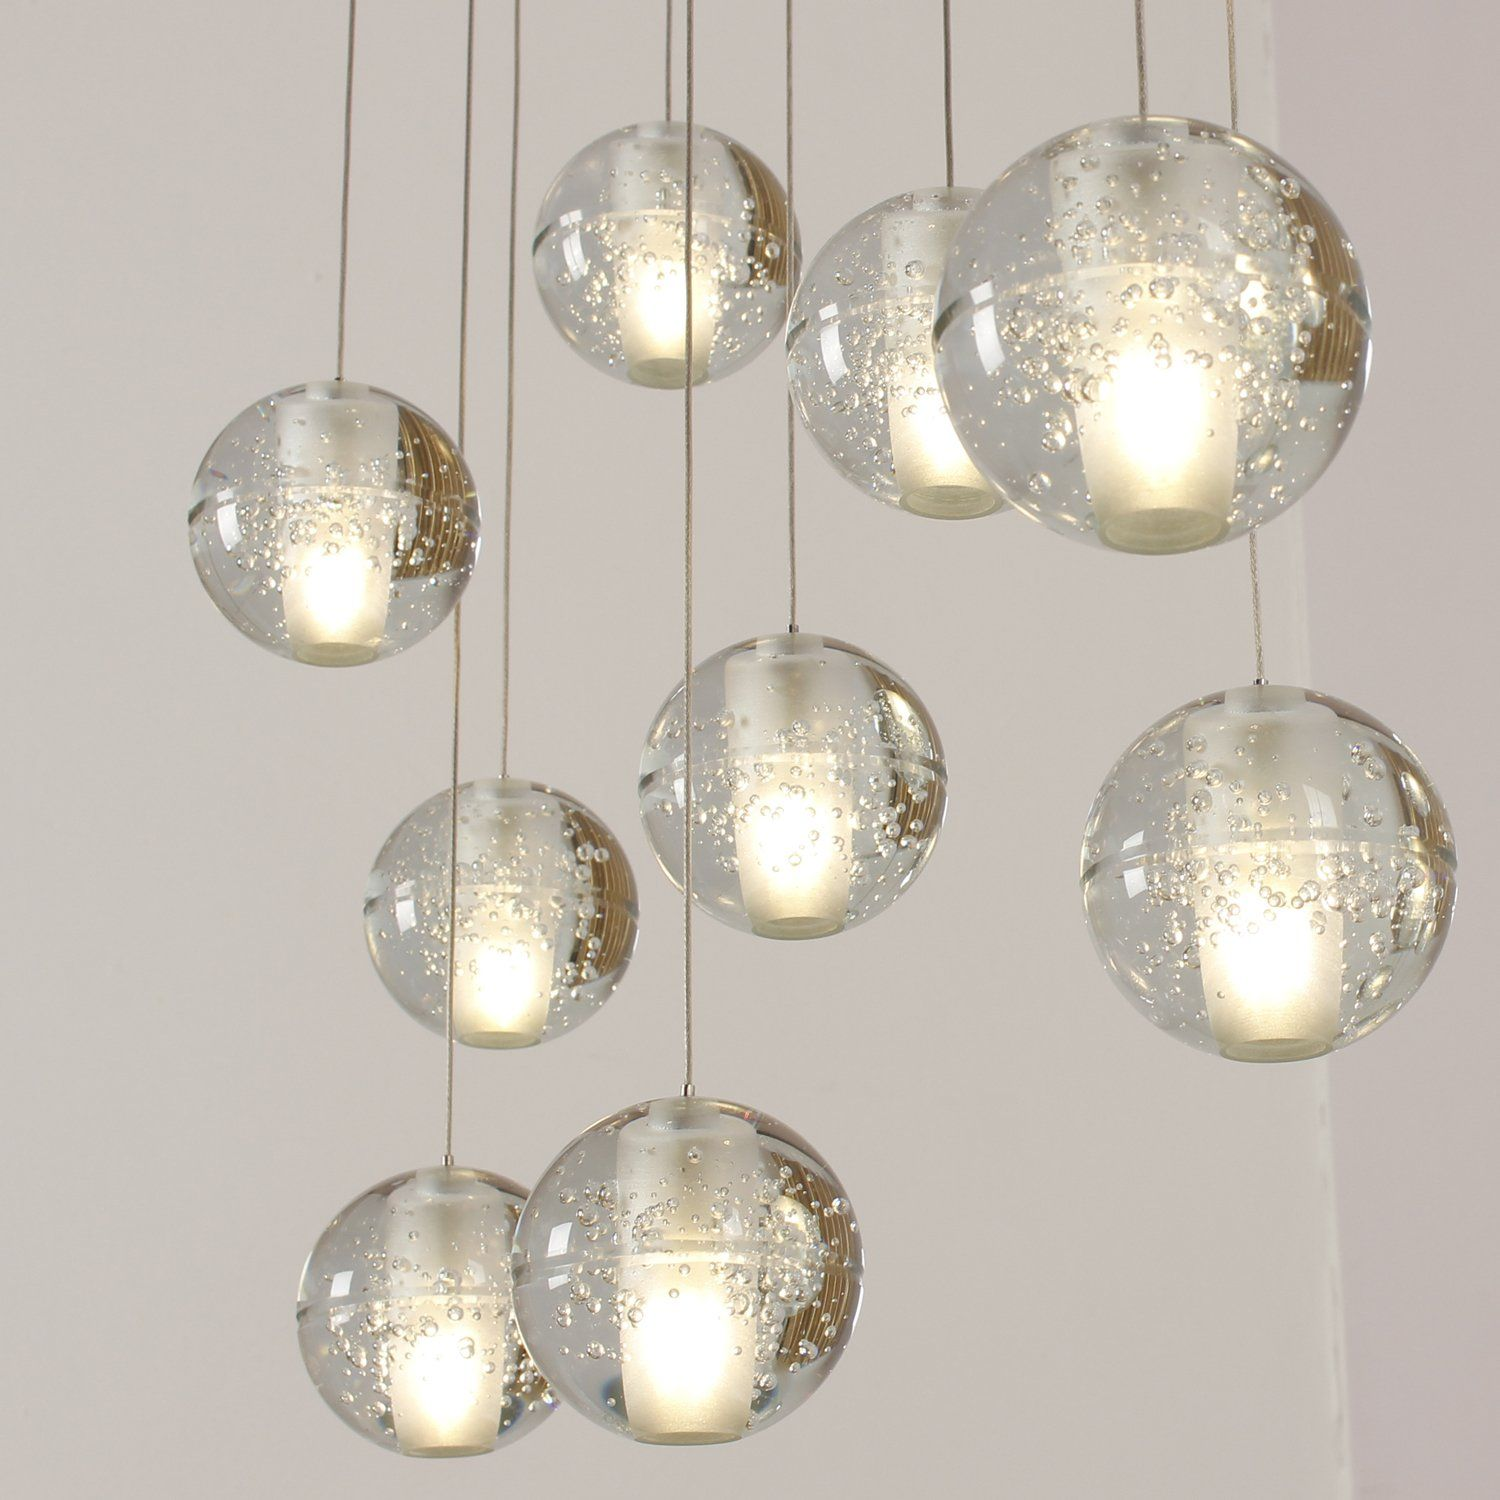 Lightinthebox Pendant Light Crystal Ball Chandeliers Dimmable With